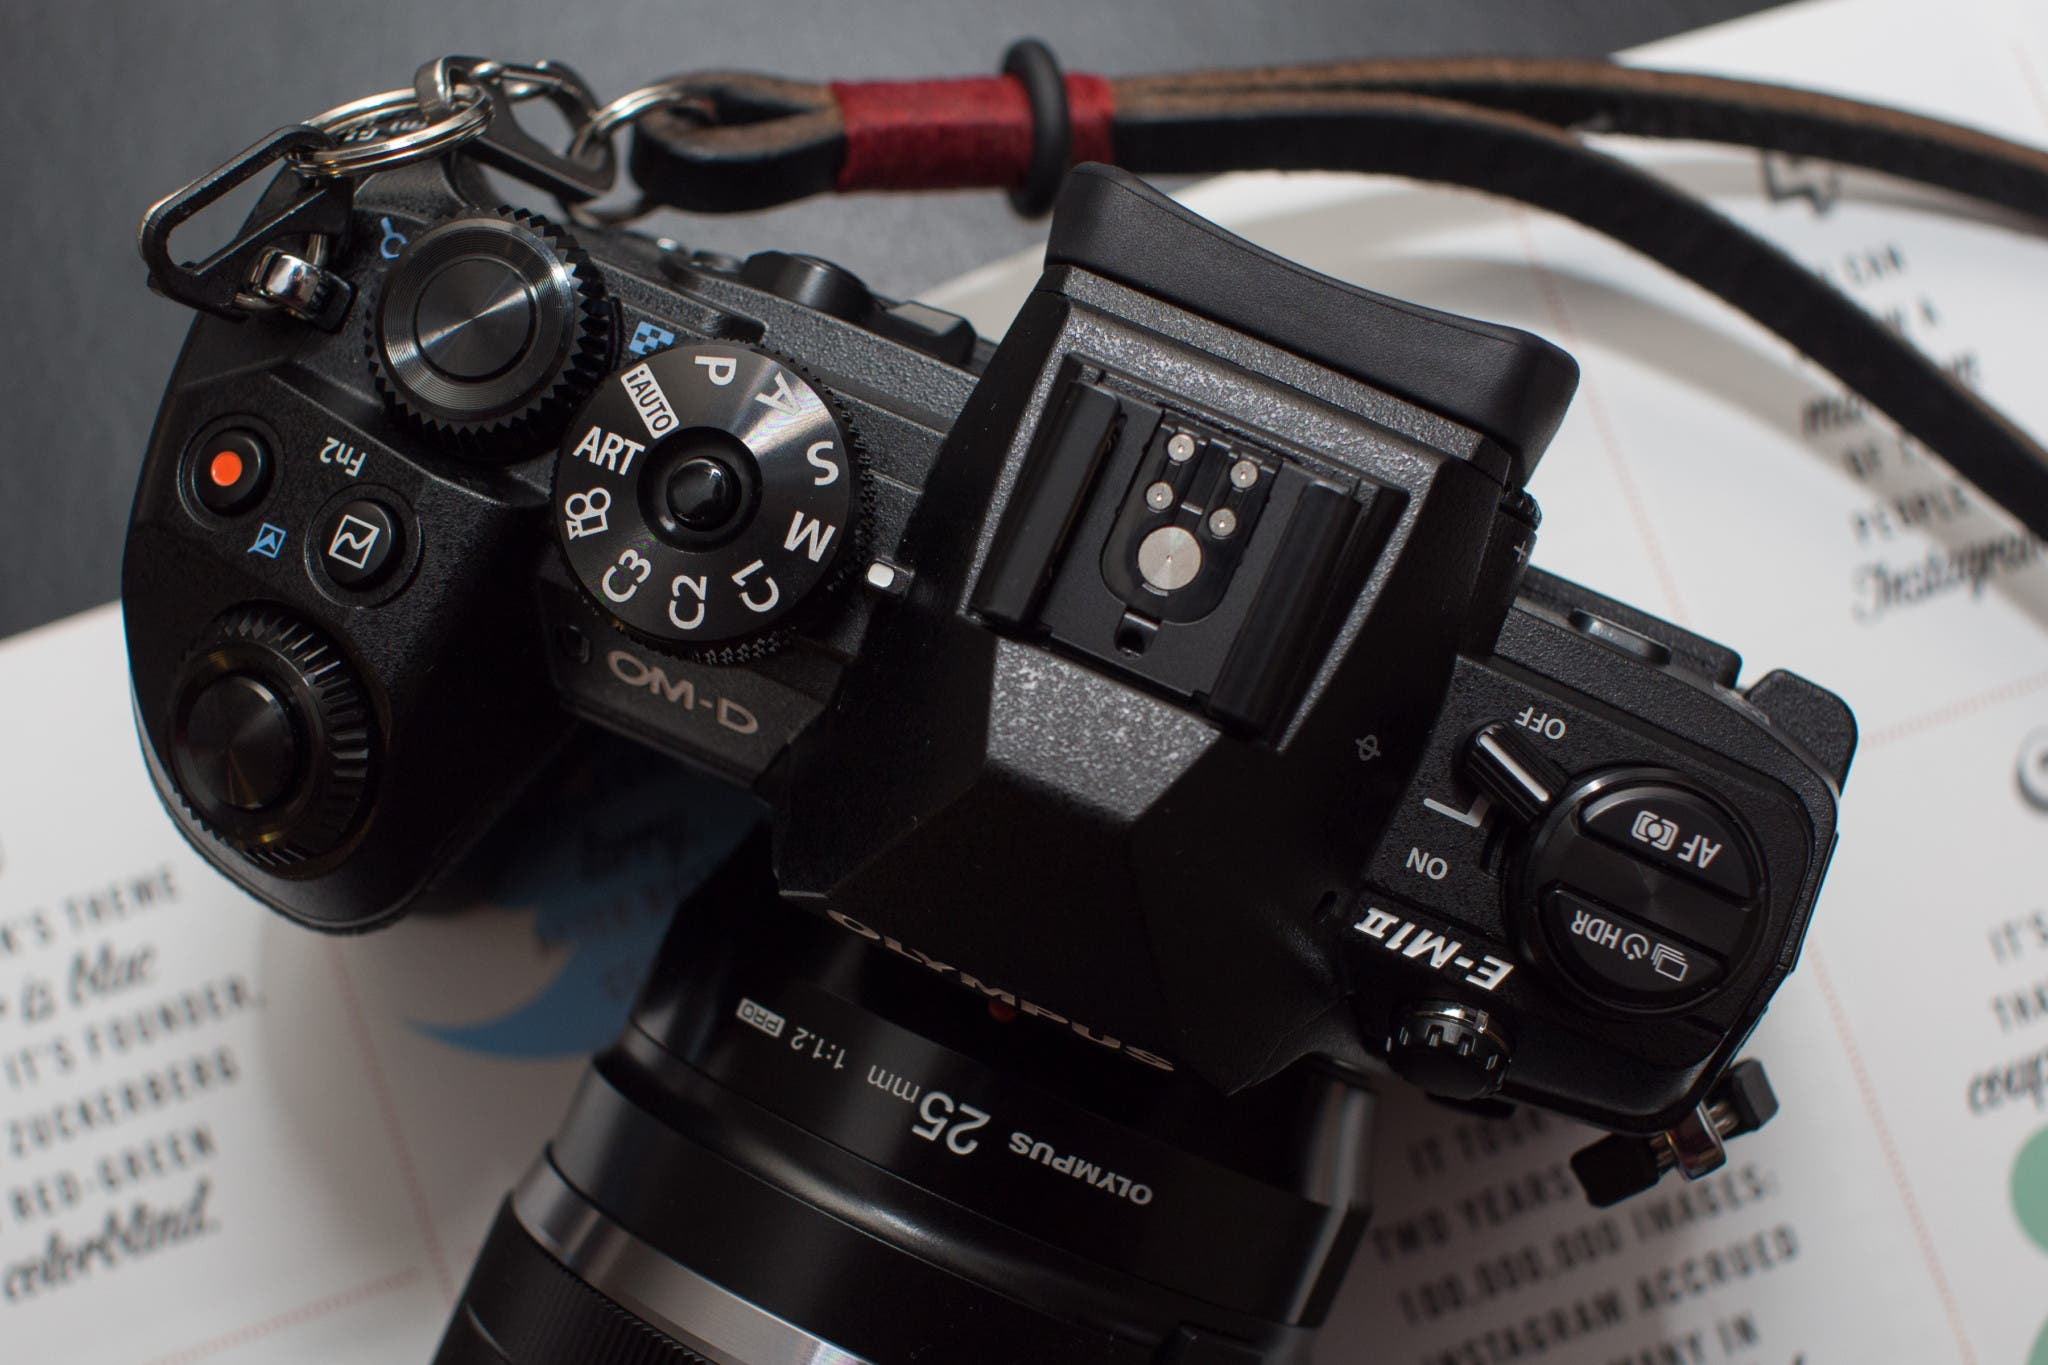 The Olympus OMD EM1 Mk II Can Be Handheld for 15 Seconds And Get Clean Exposures